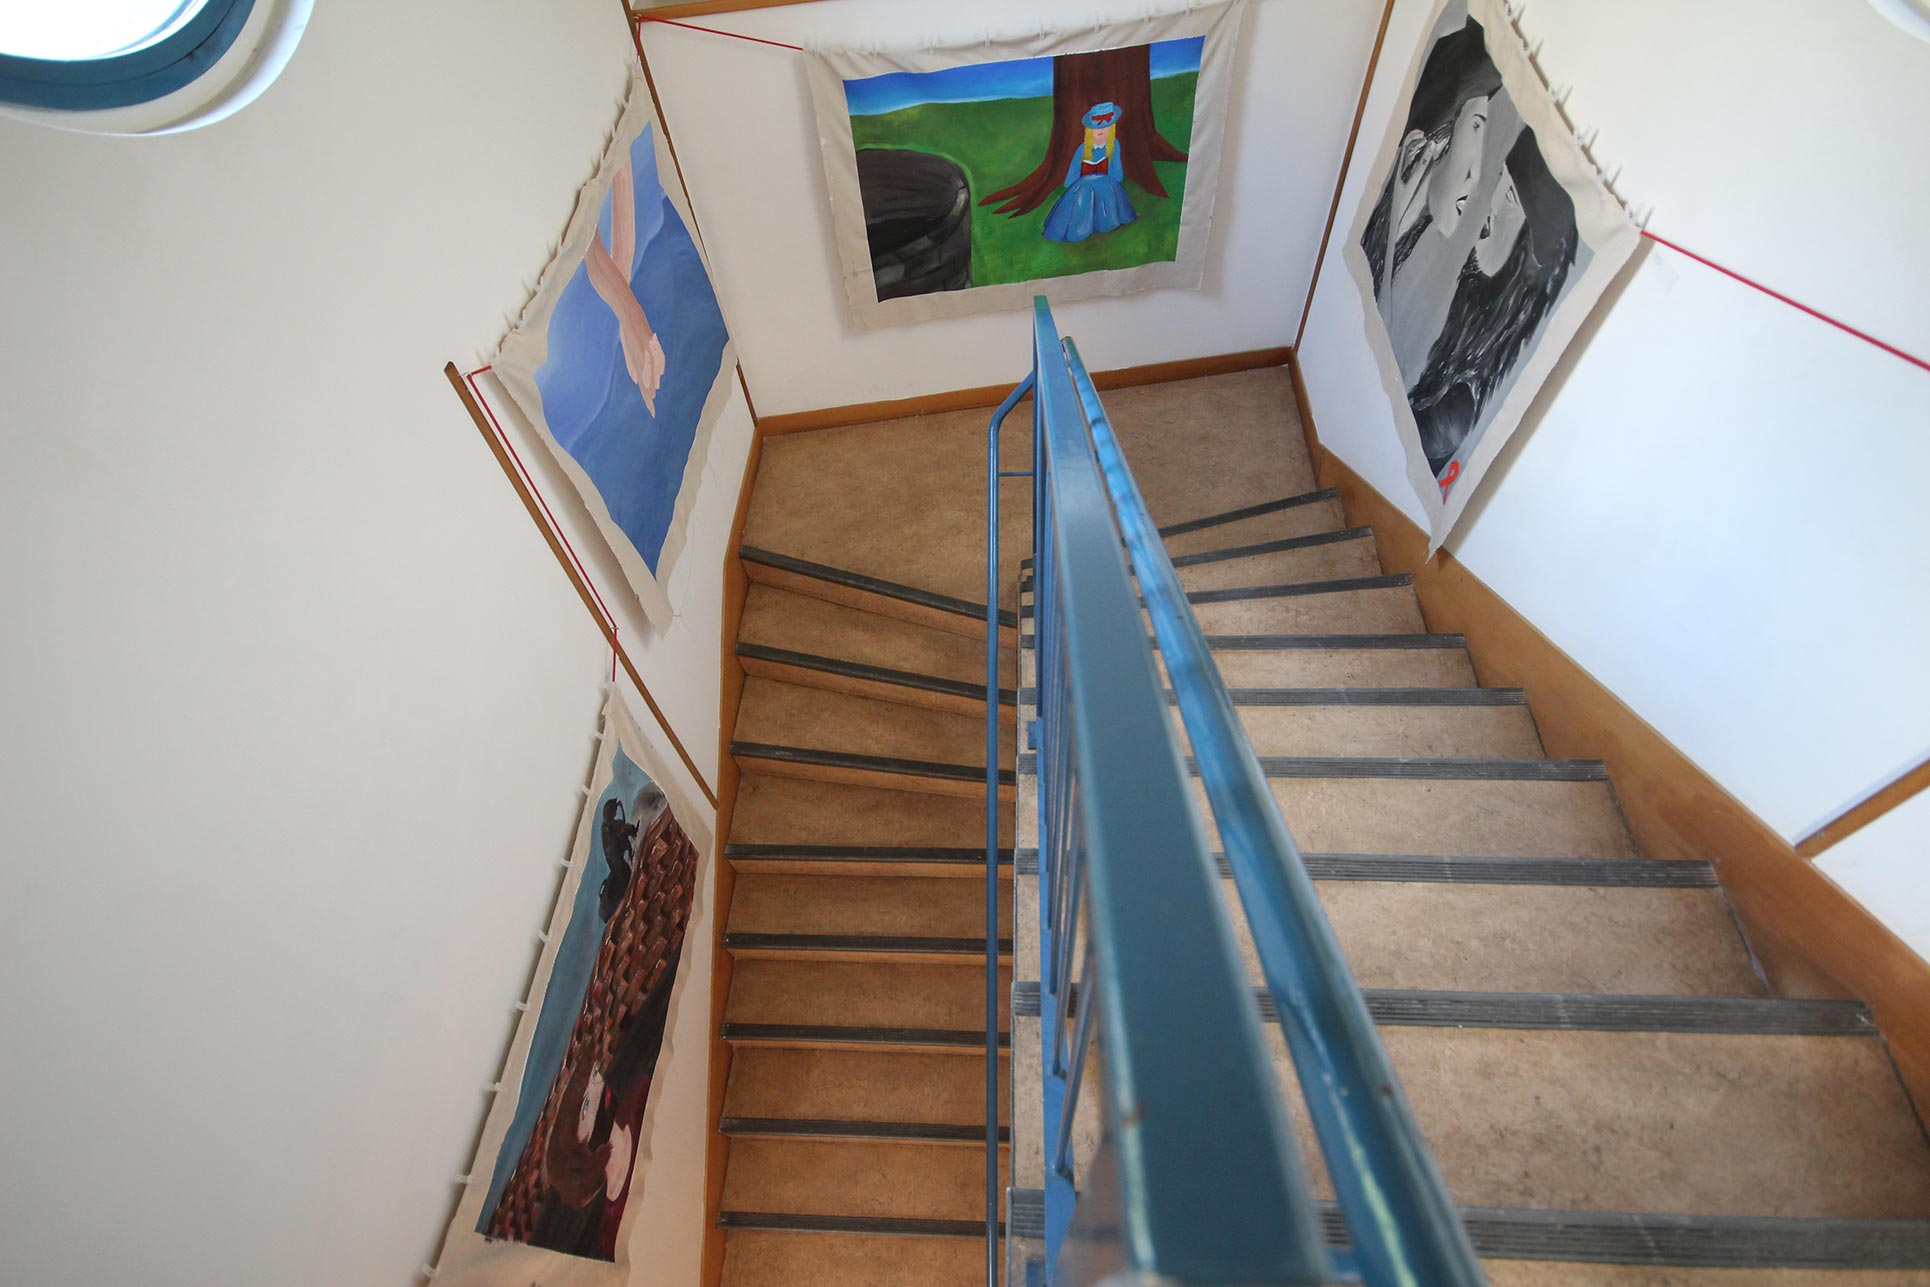 Installation of 5 paintings on topics of a book in the staircase of the school library (Photo: Barbara Fässler)